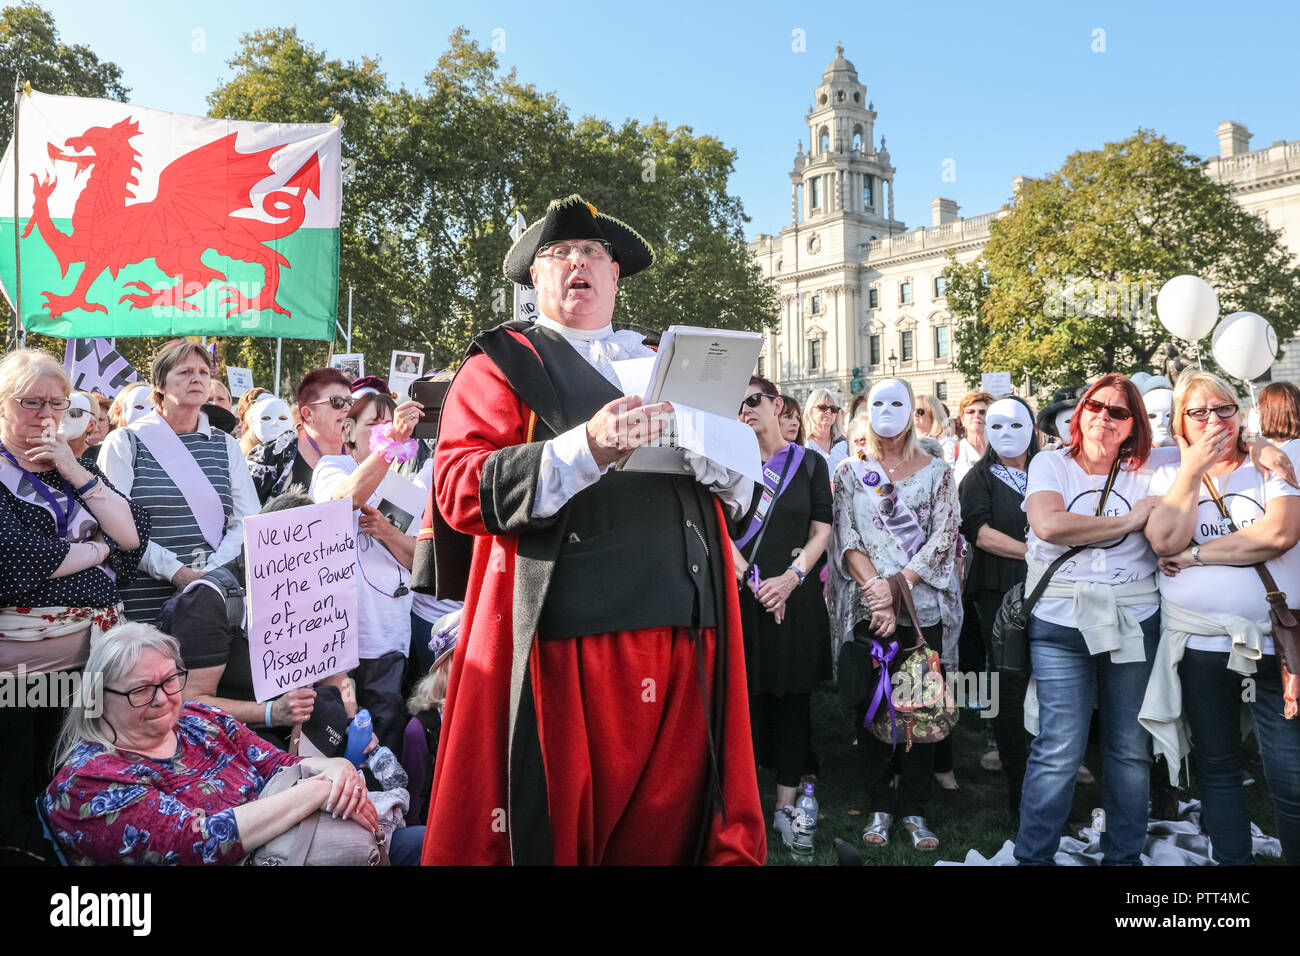 Westminster, London, 10th Oct 2018. A town crier shouts for pension equality to big cheers from the crowd. Women's pension groups, including the WASPI Campaign, have organised a march from Hyde Park to Parliament Square where several thousand women demonstrate for pension equality in British state pensions. Credit: Imageplotter News and Sports/Alamy Live News - Stock Image